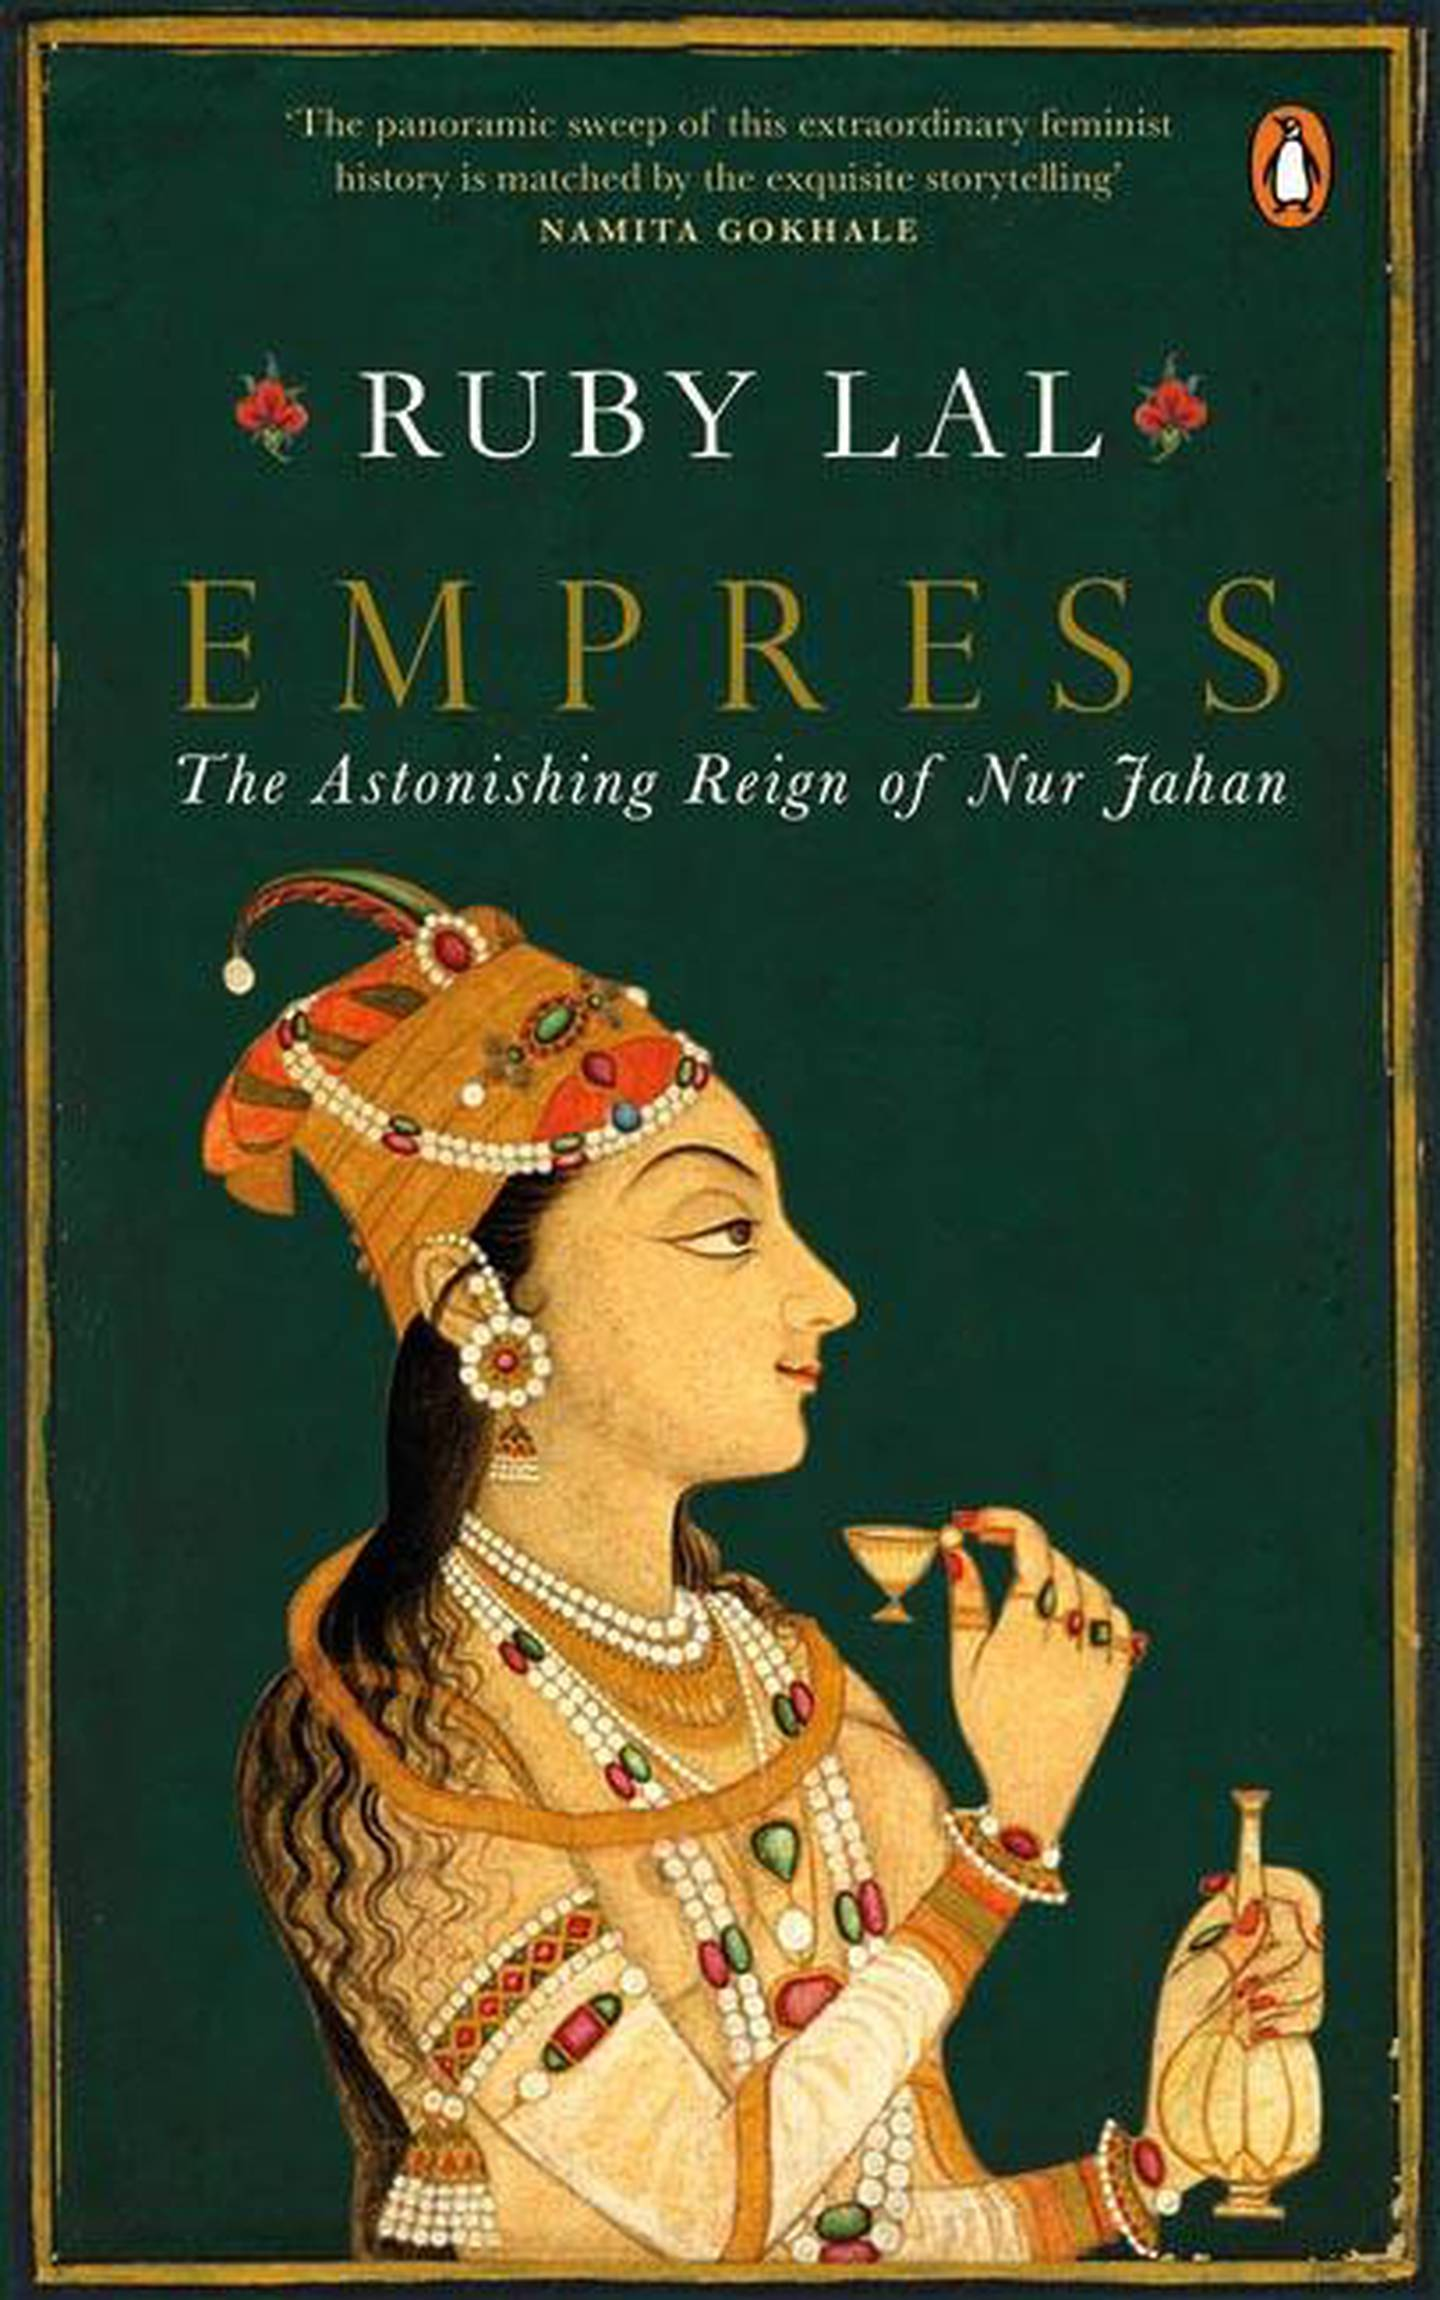 Empress: The Astonishing Reign of Nur Jahan by Ruby Lal published by India Viking. Courtesy Penguin India